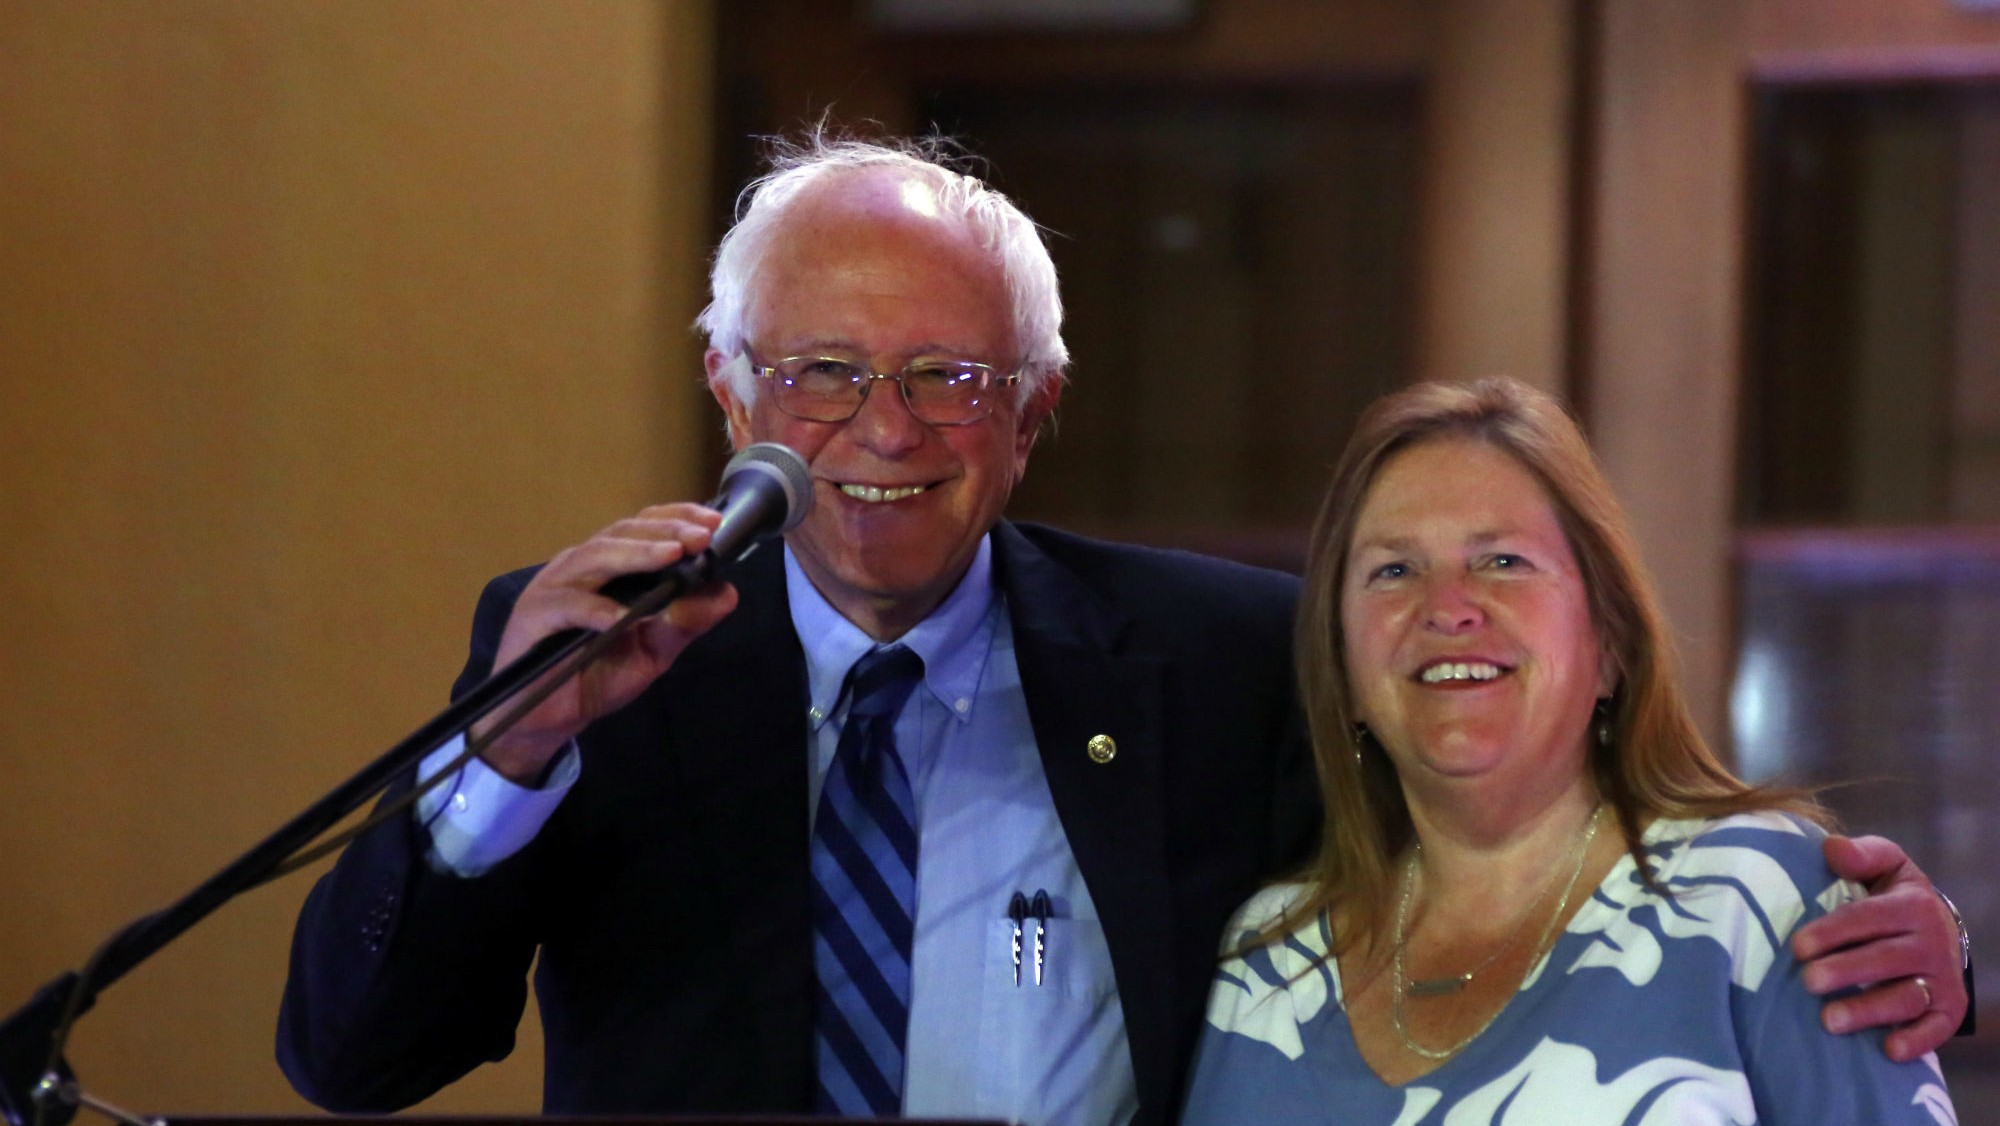 Bernie Sanders Notches Win Over Hillary Clinton in Oregon